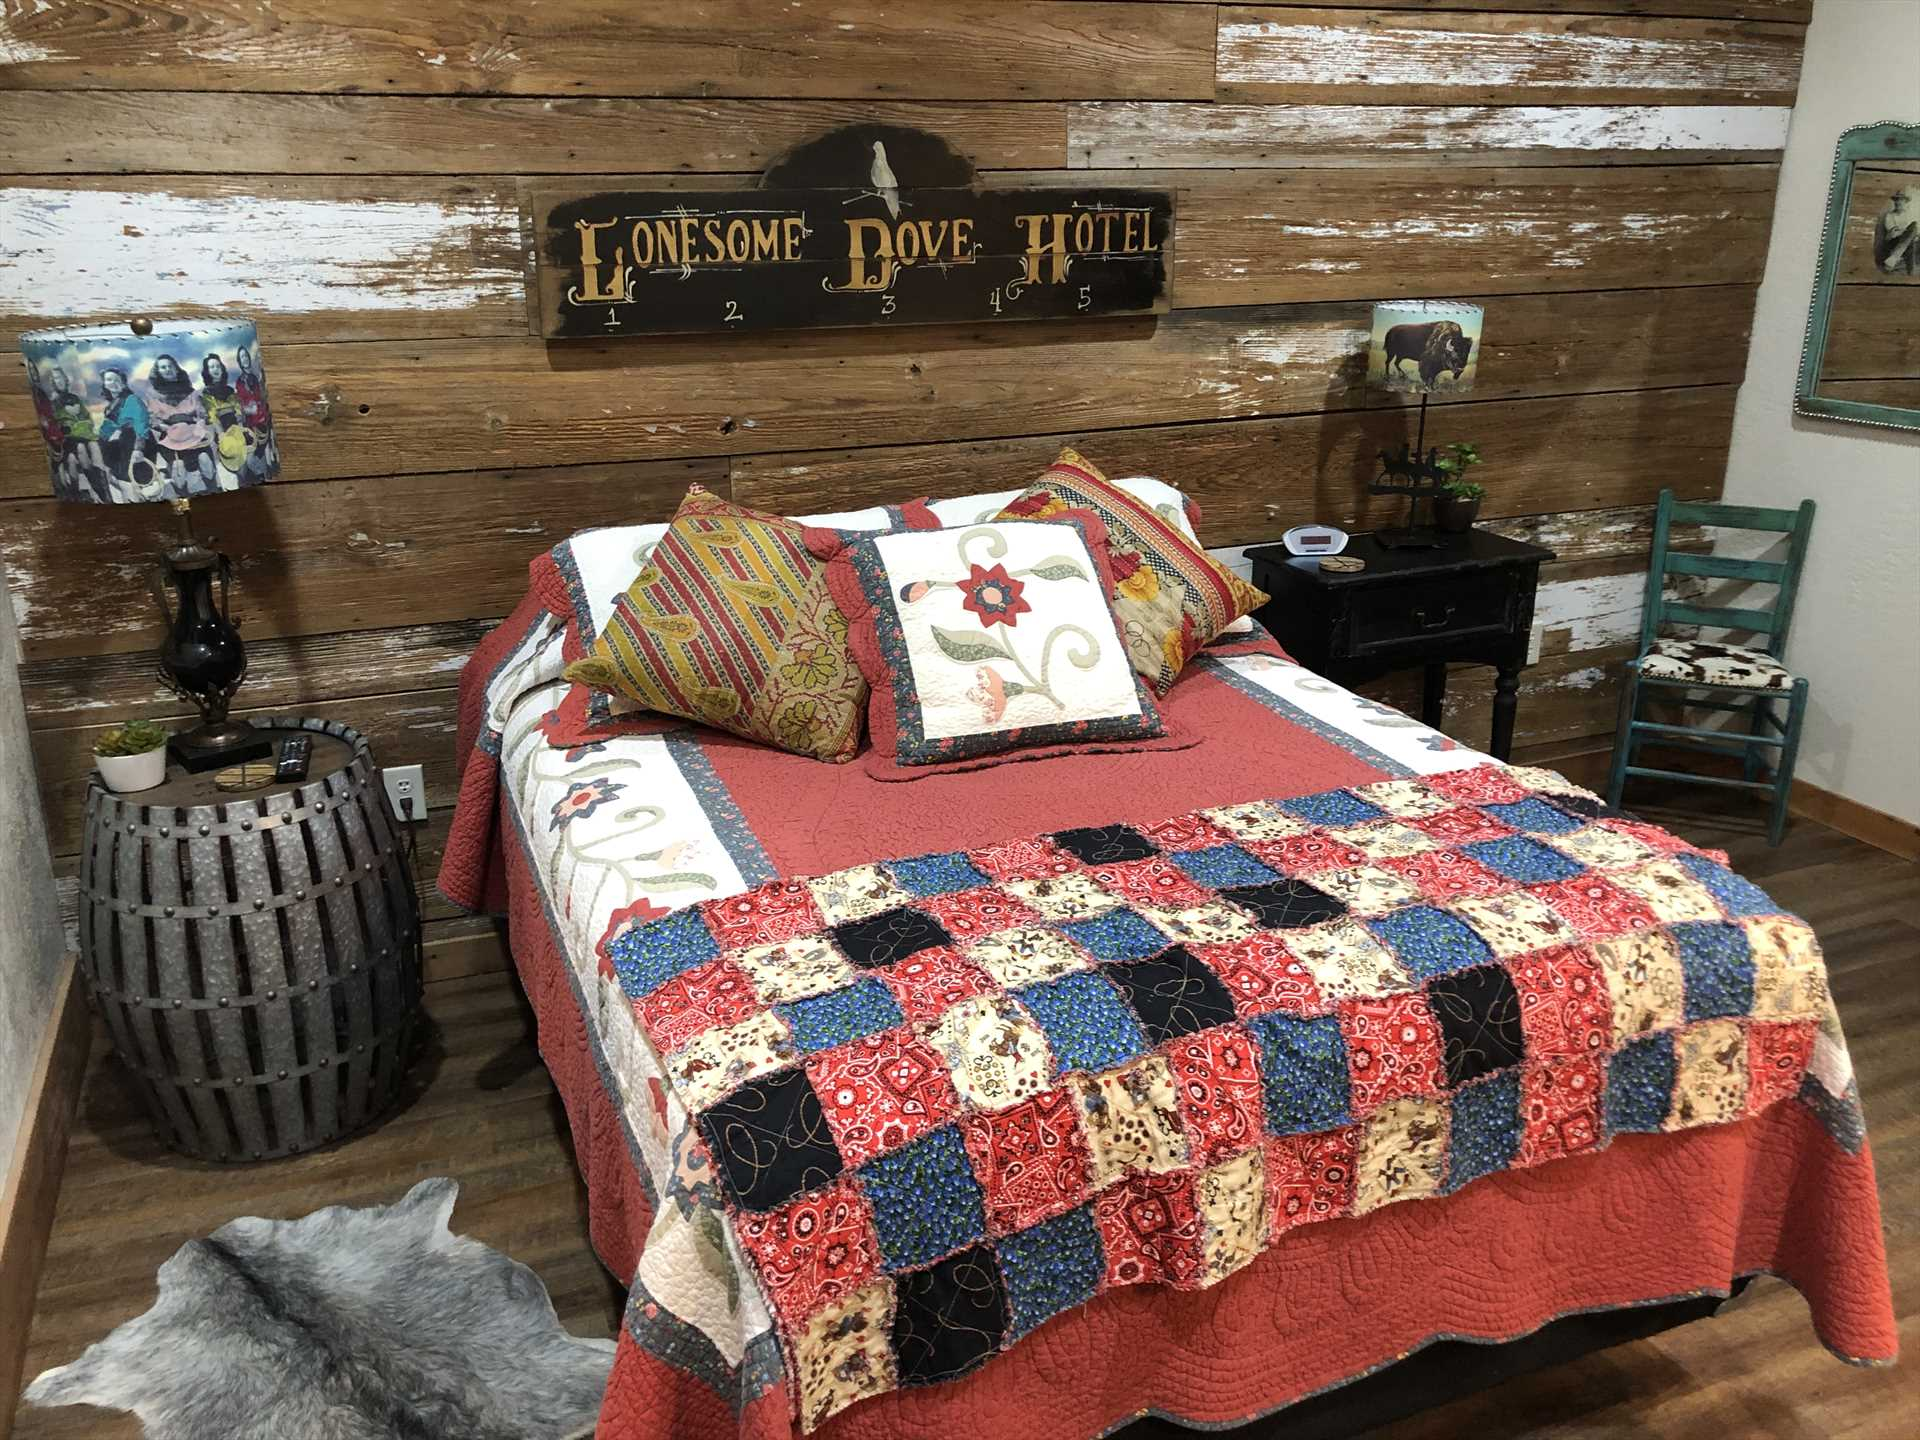 The comfy queen-sized bed (along with the futon and full bath) comes fully dressed-up with warm and clean linens.